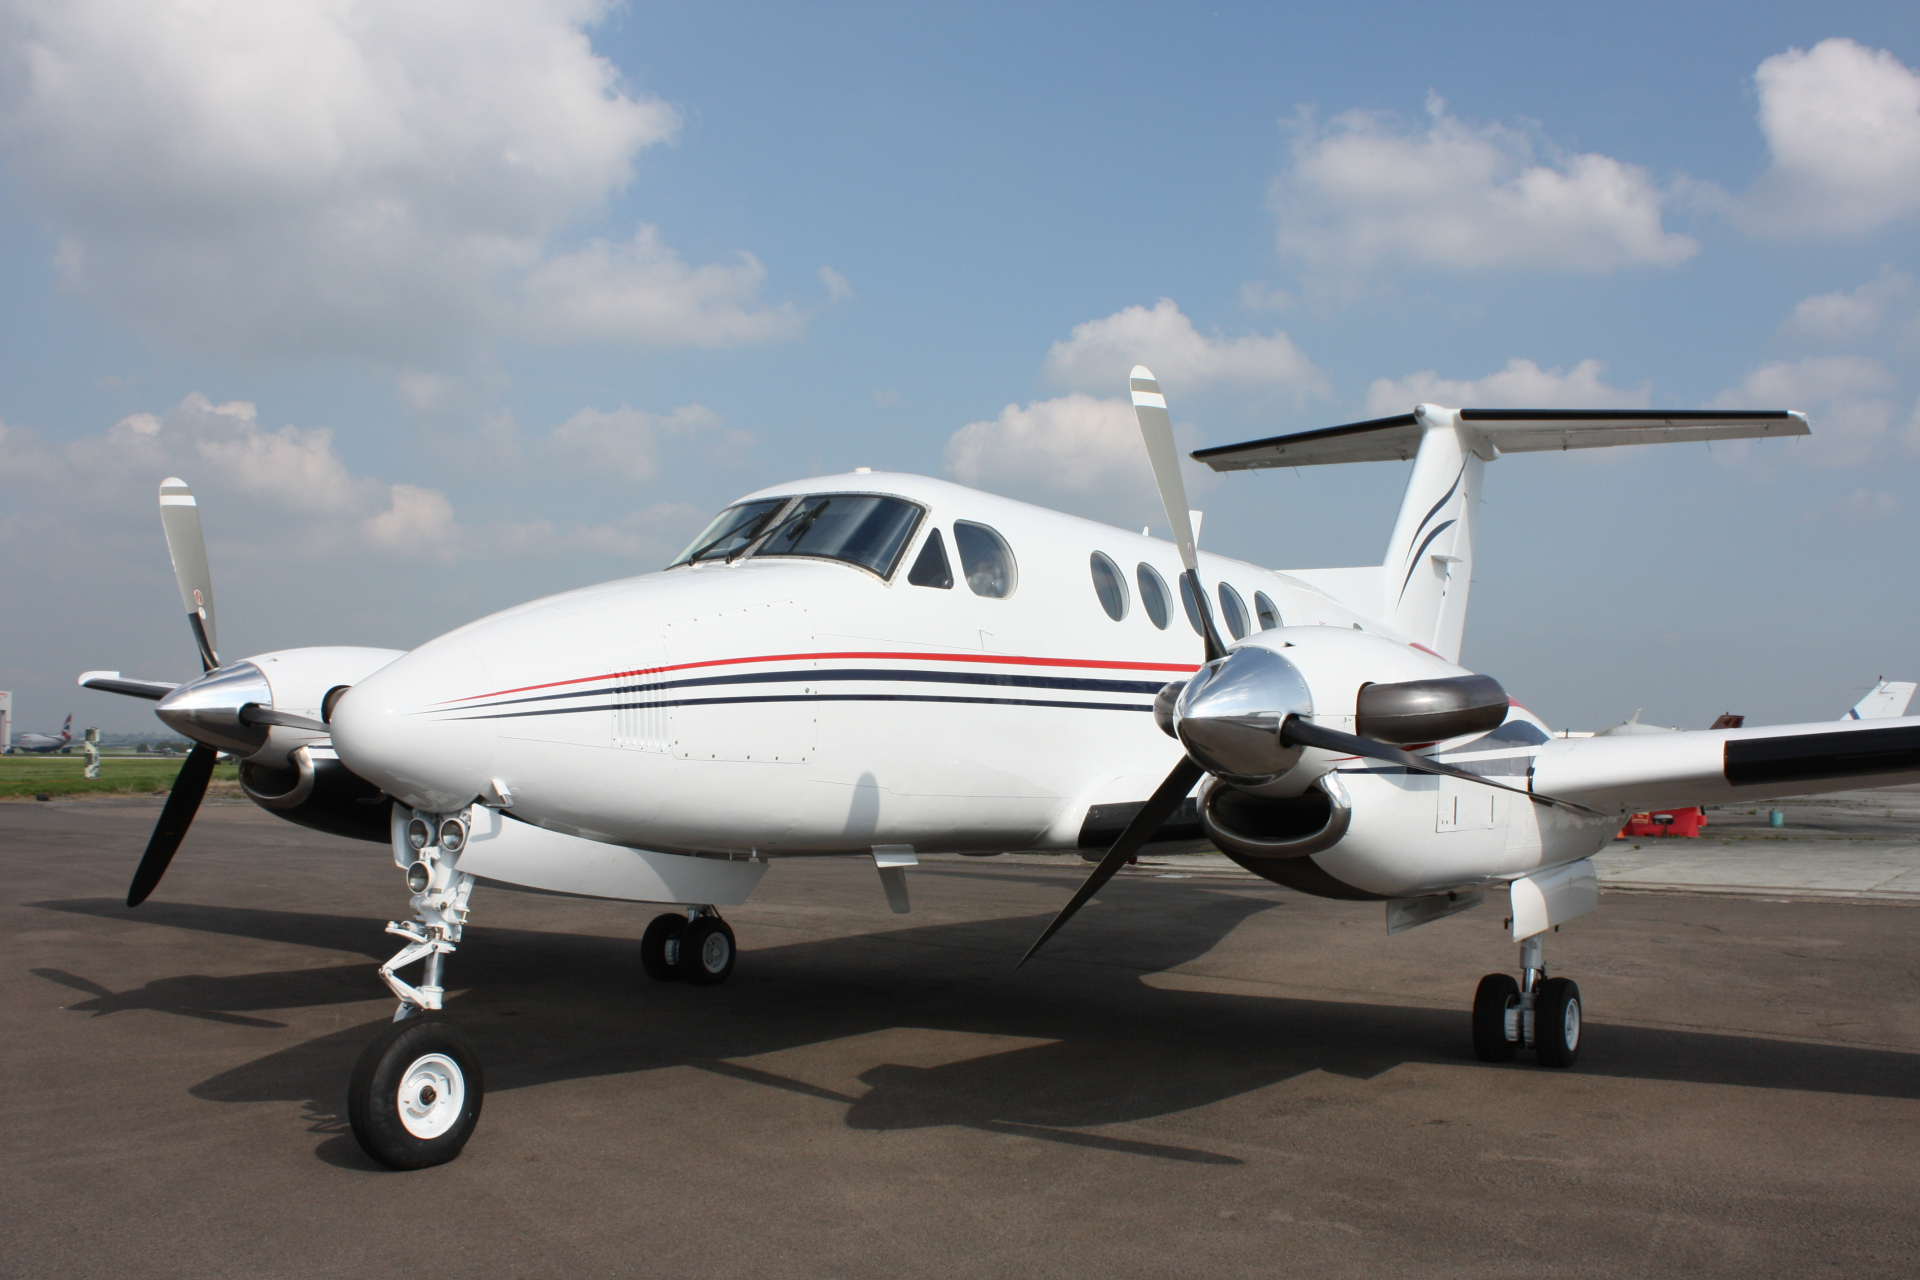 King Air 200 G-OLIV